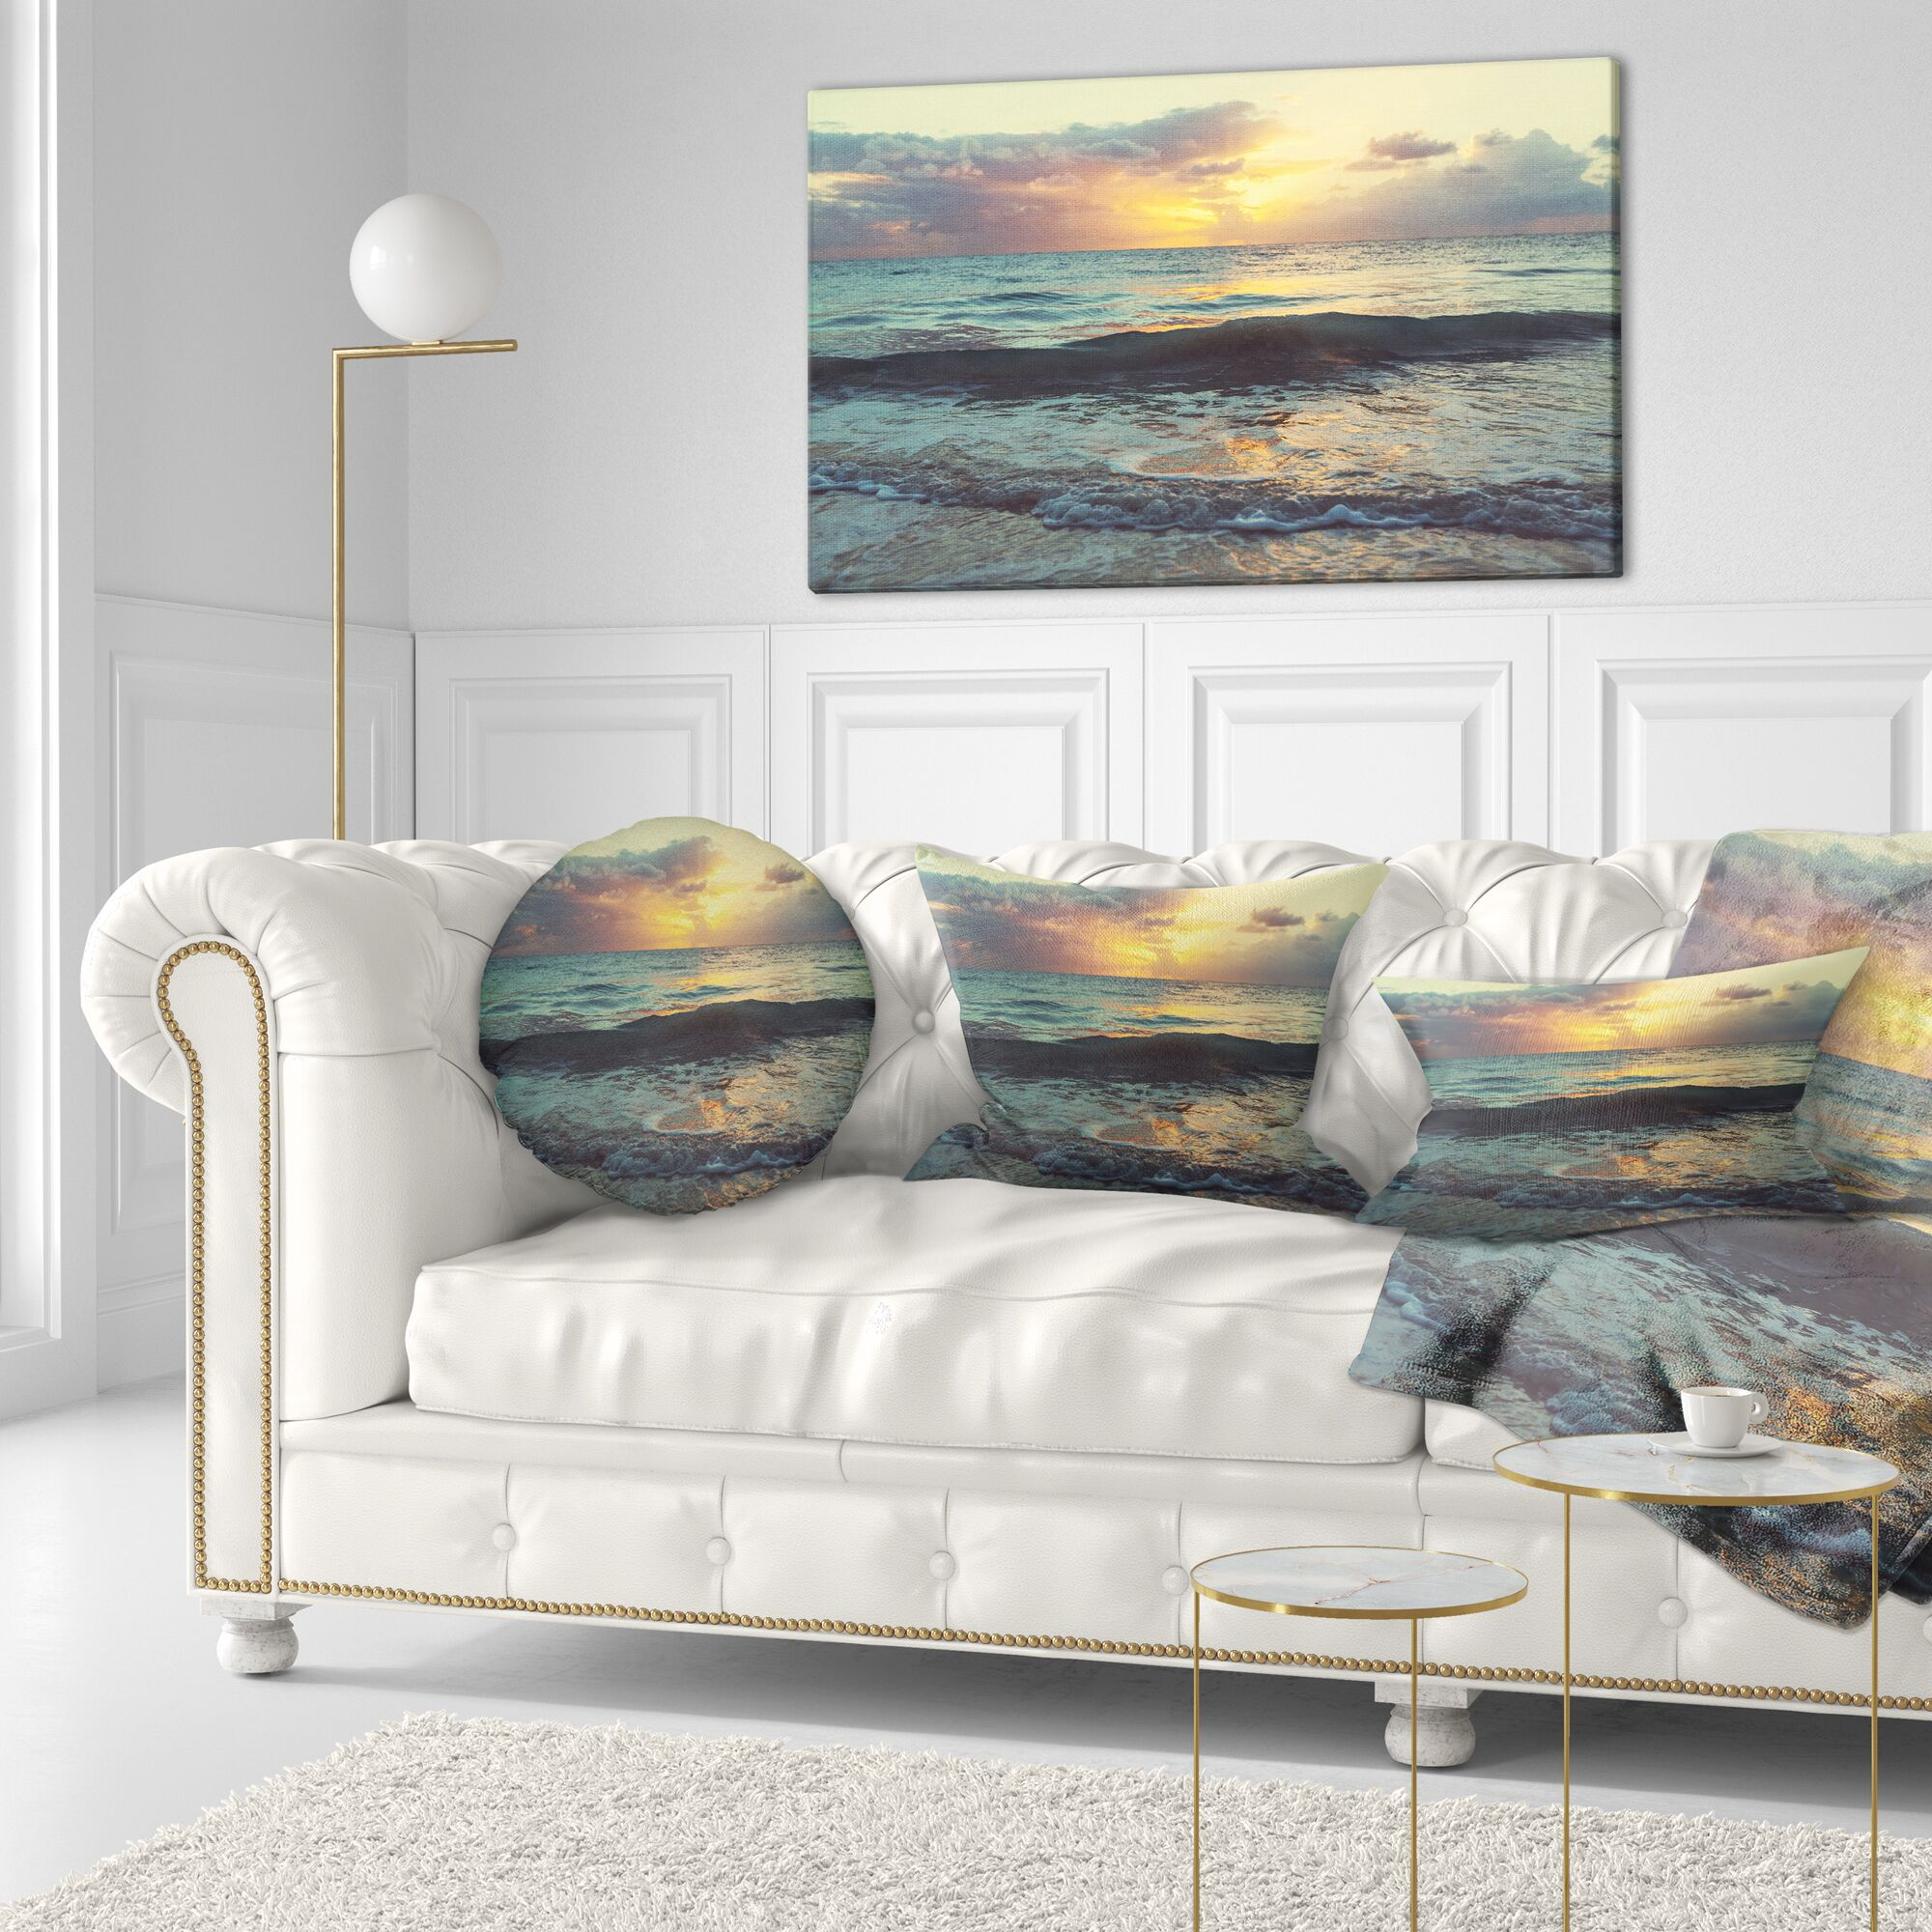 Seascape Colorful Bluish Waters at Sunset Lumbar Pillow